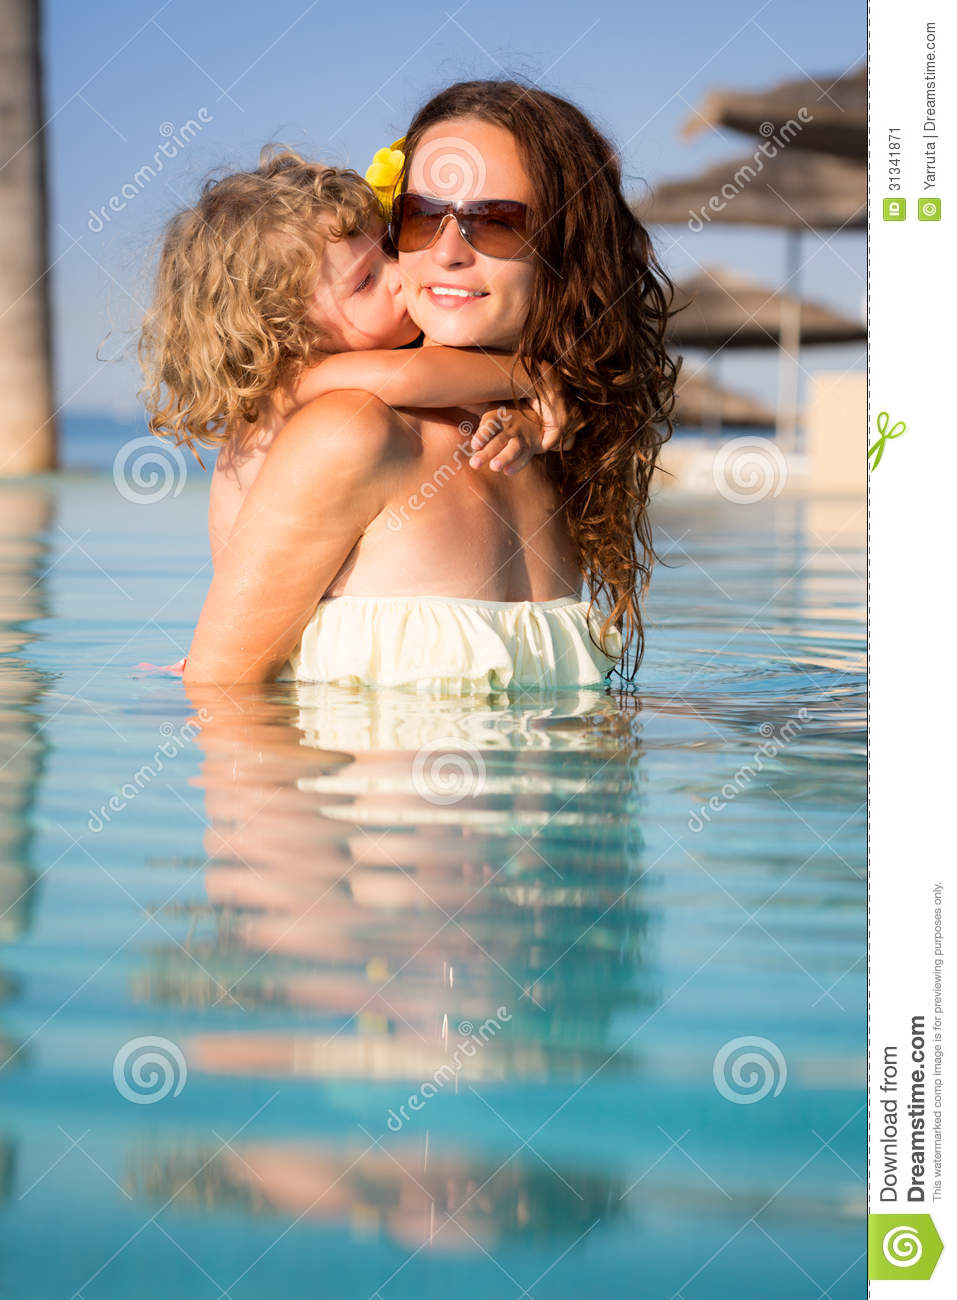 Child Kissing Woman In Pool Stock Image Image Of Kissing